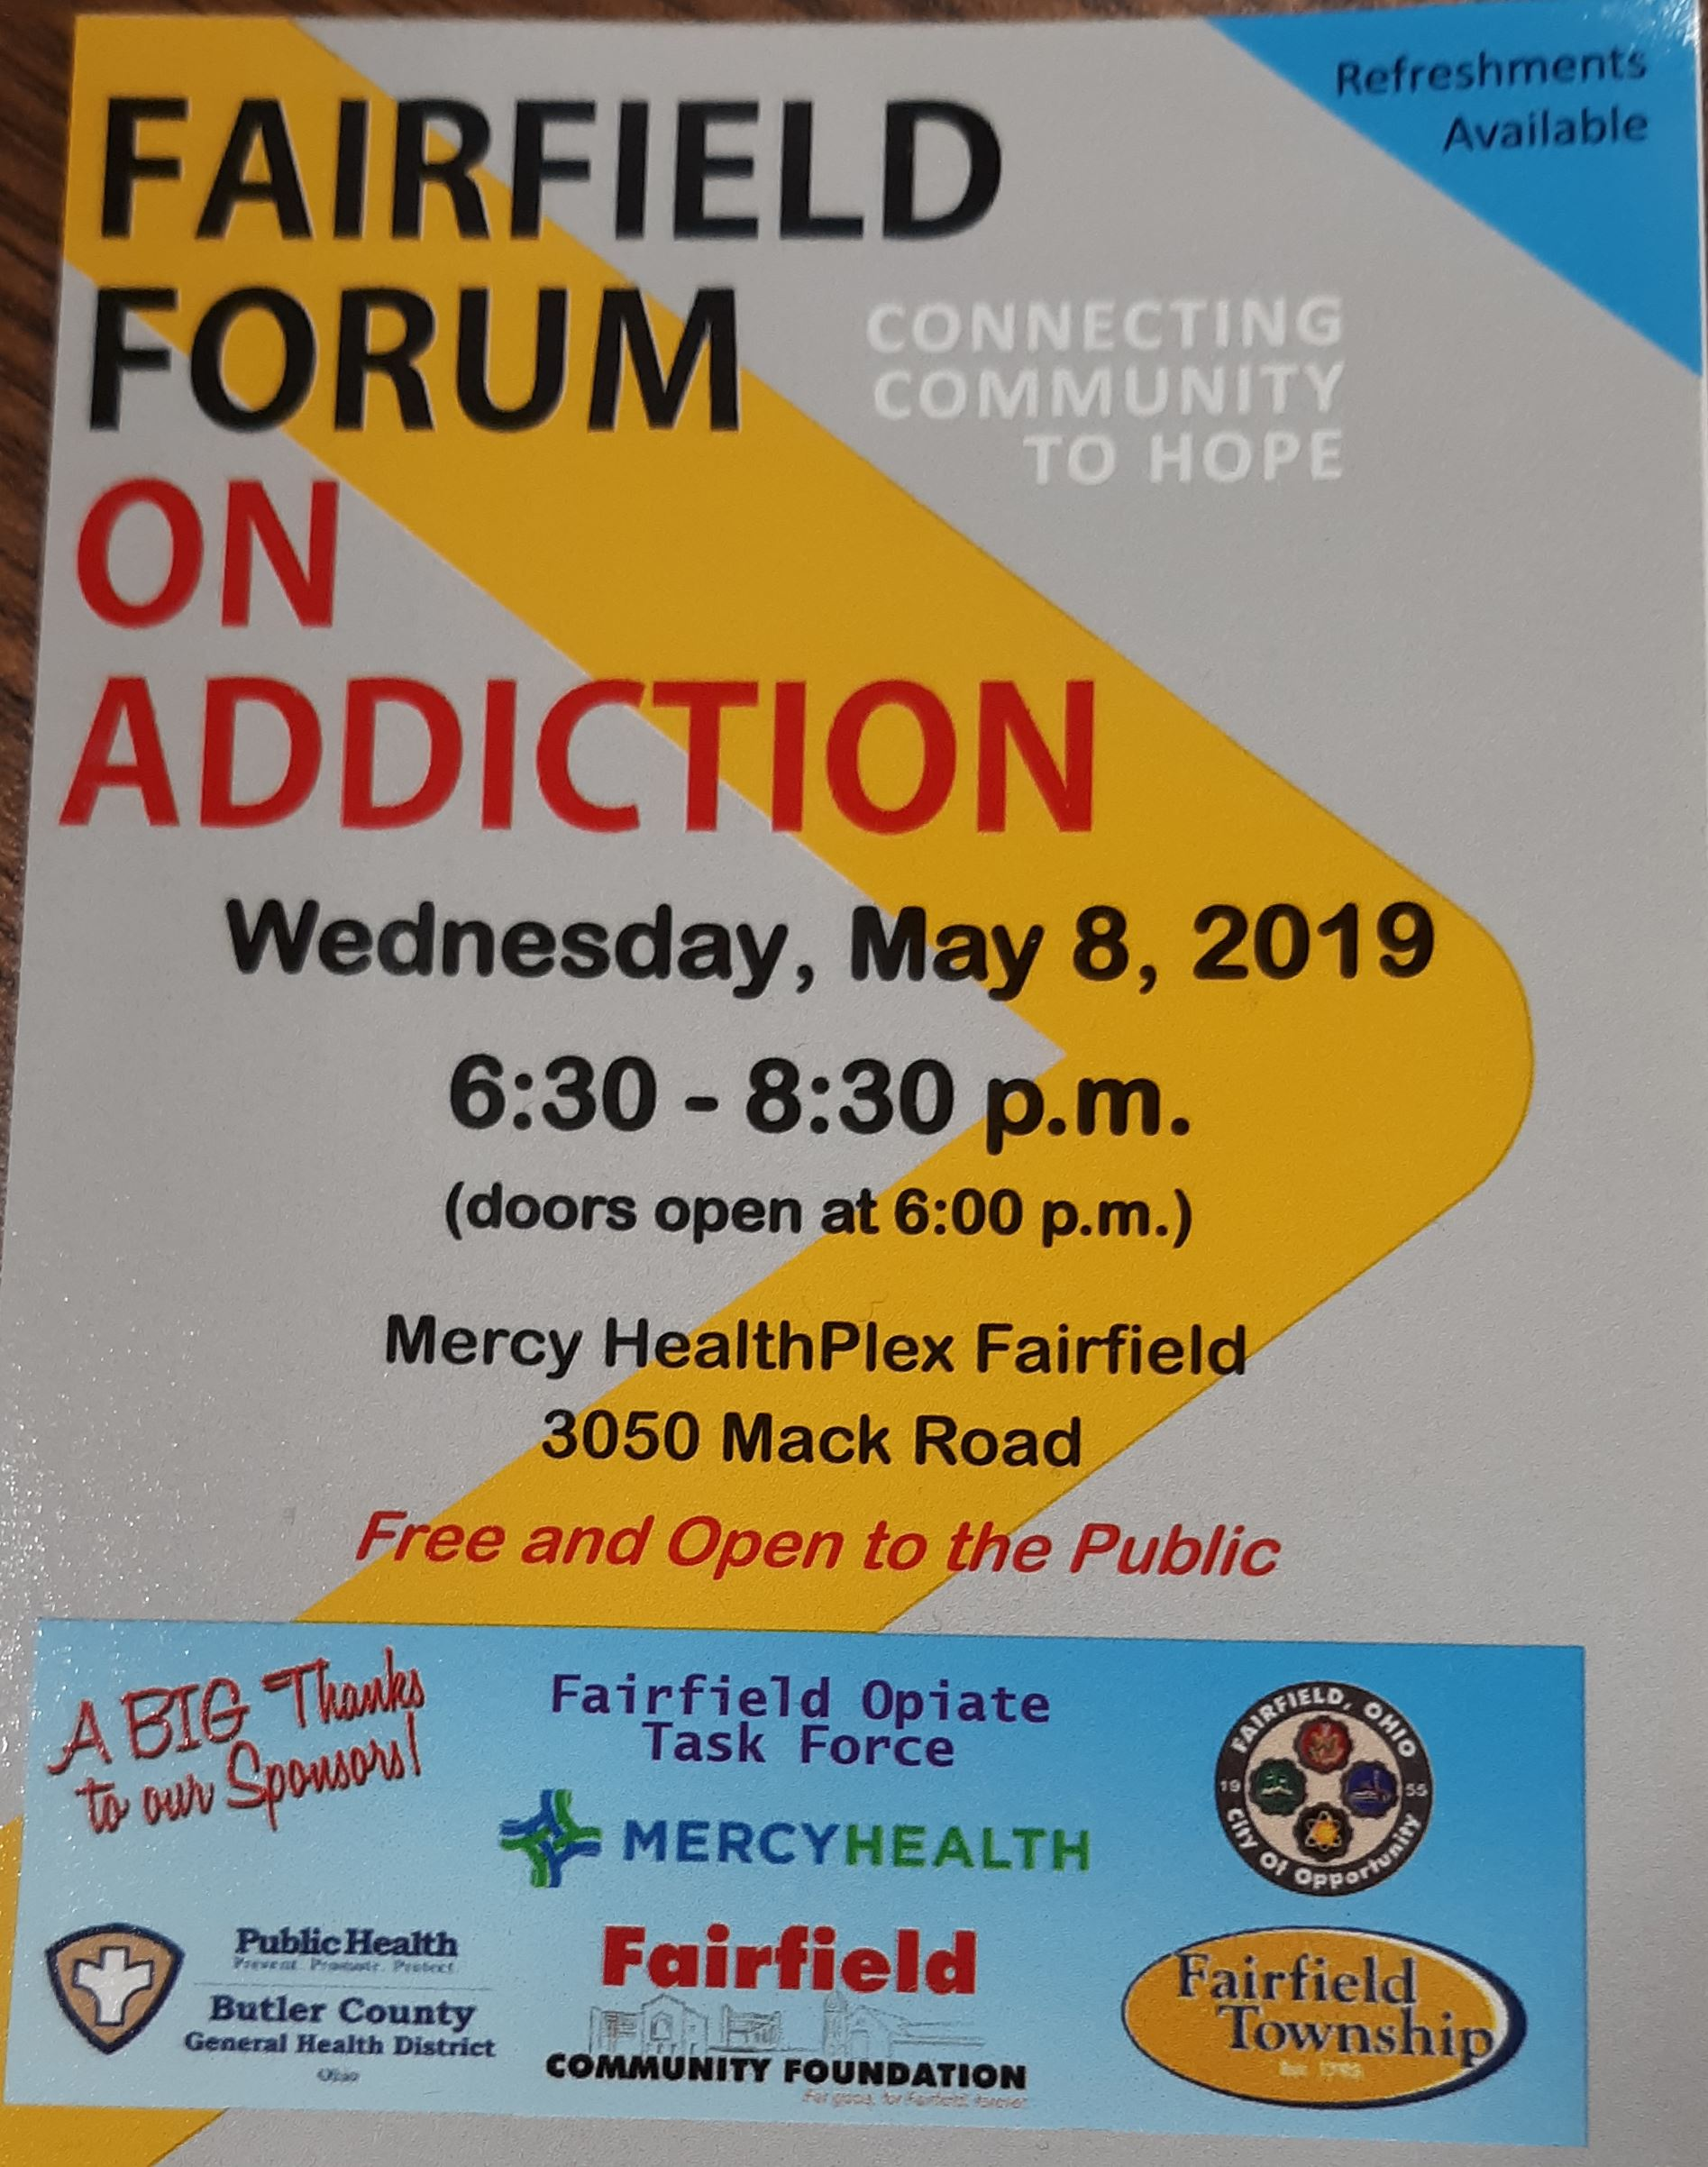 forum on addiction 5-2019